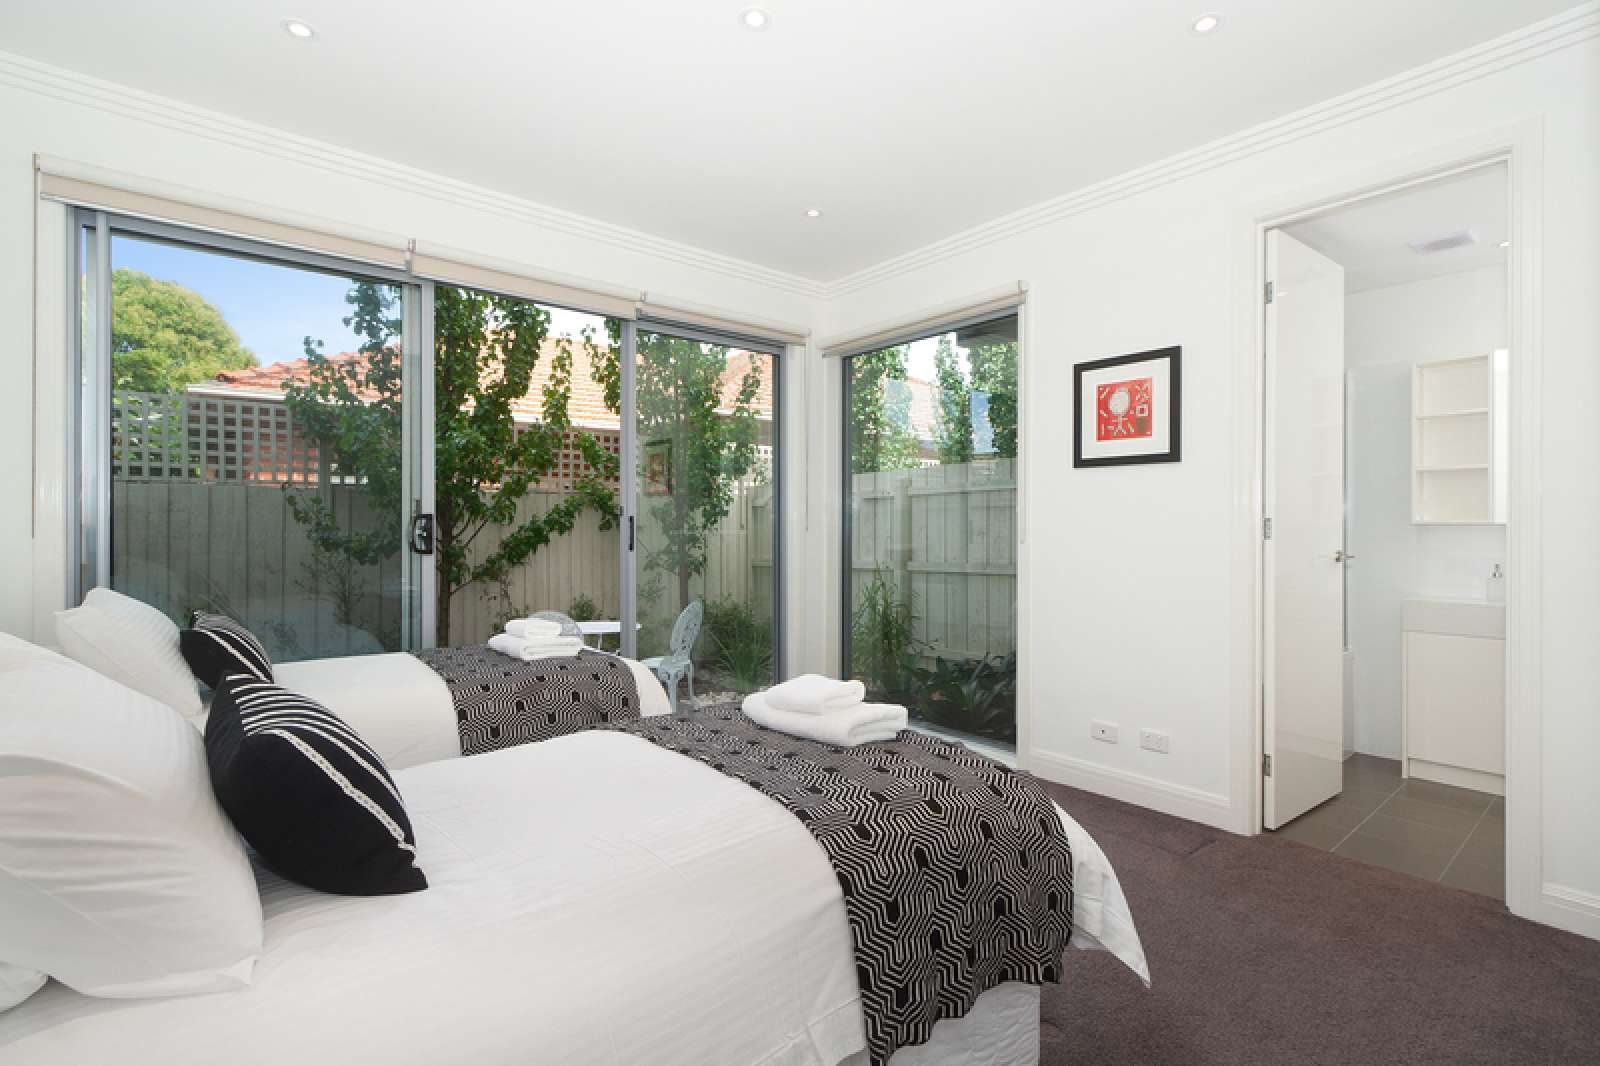 image for 16/293-295 Hawthorn Road, Caulfield, Melbourne